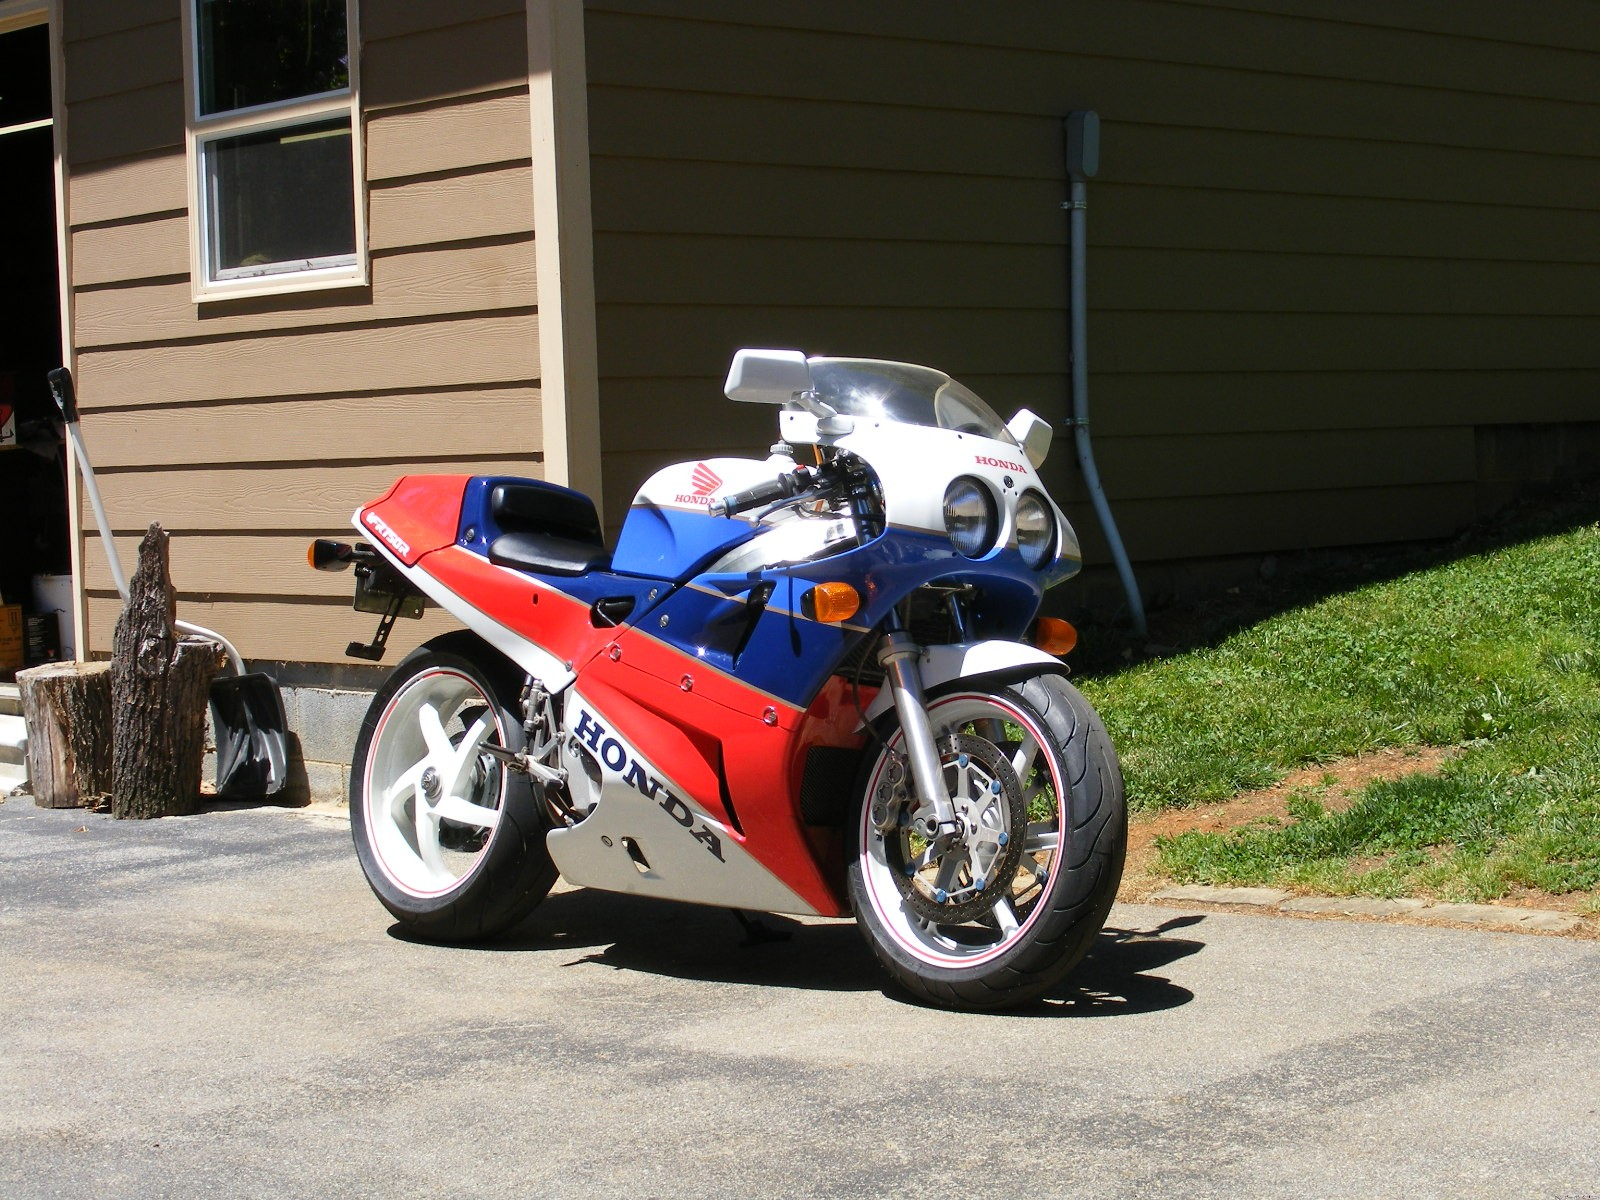 VFR750R Forward Side